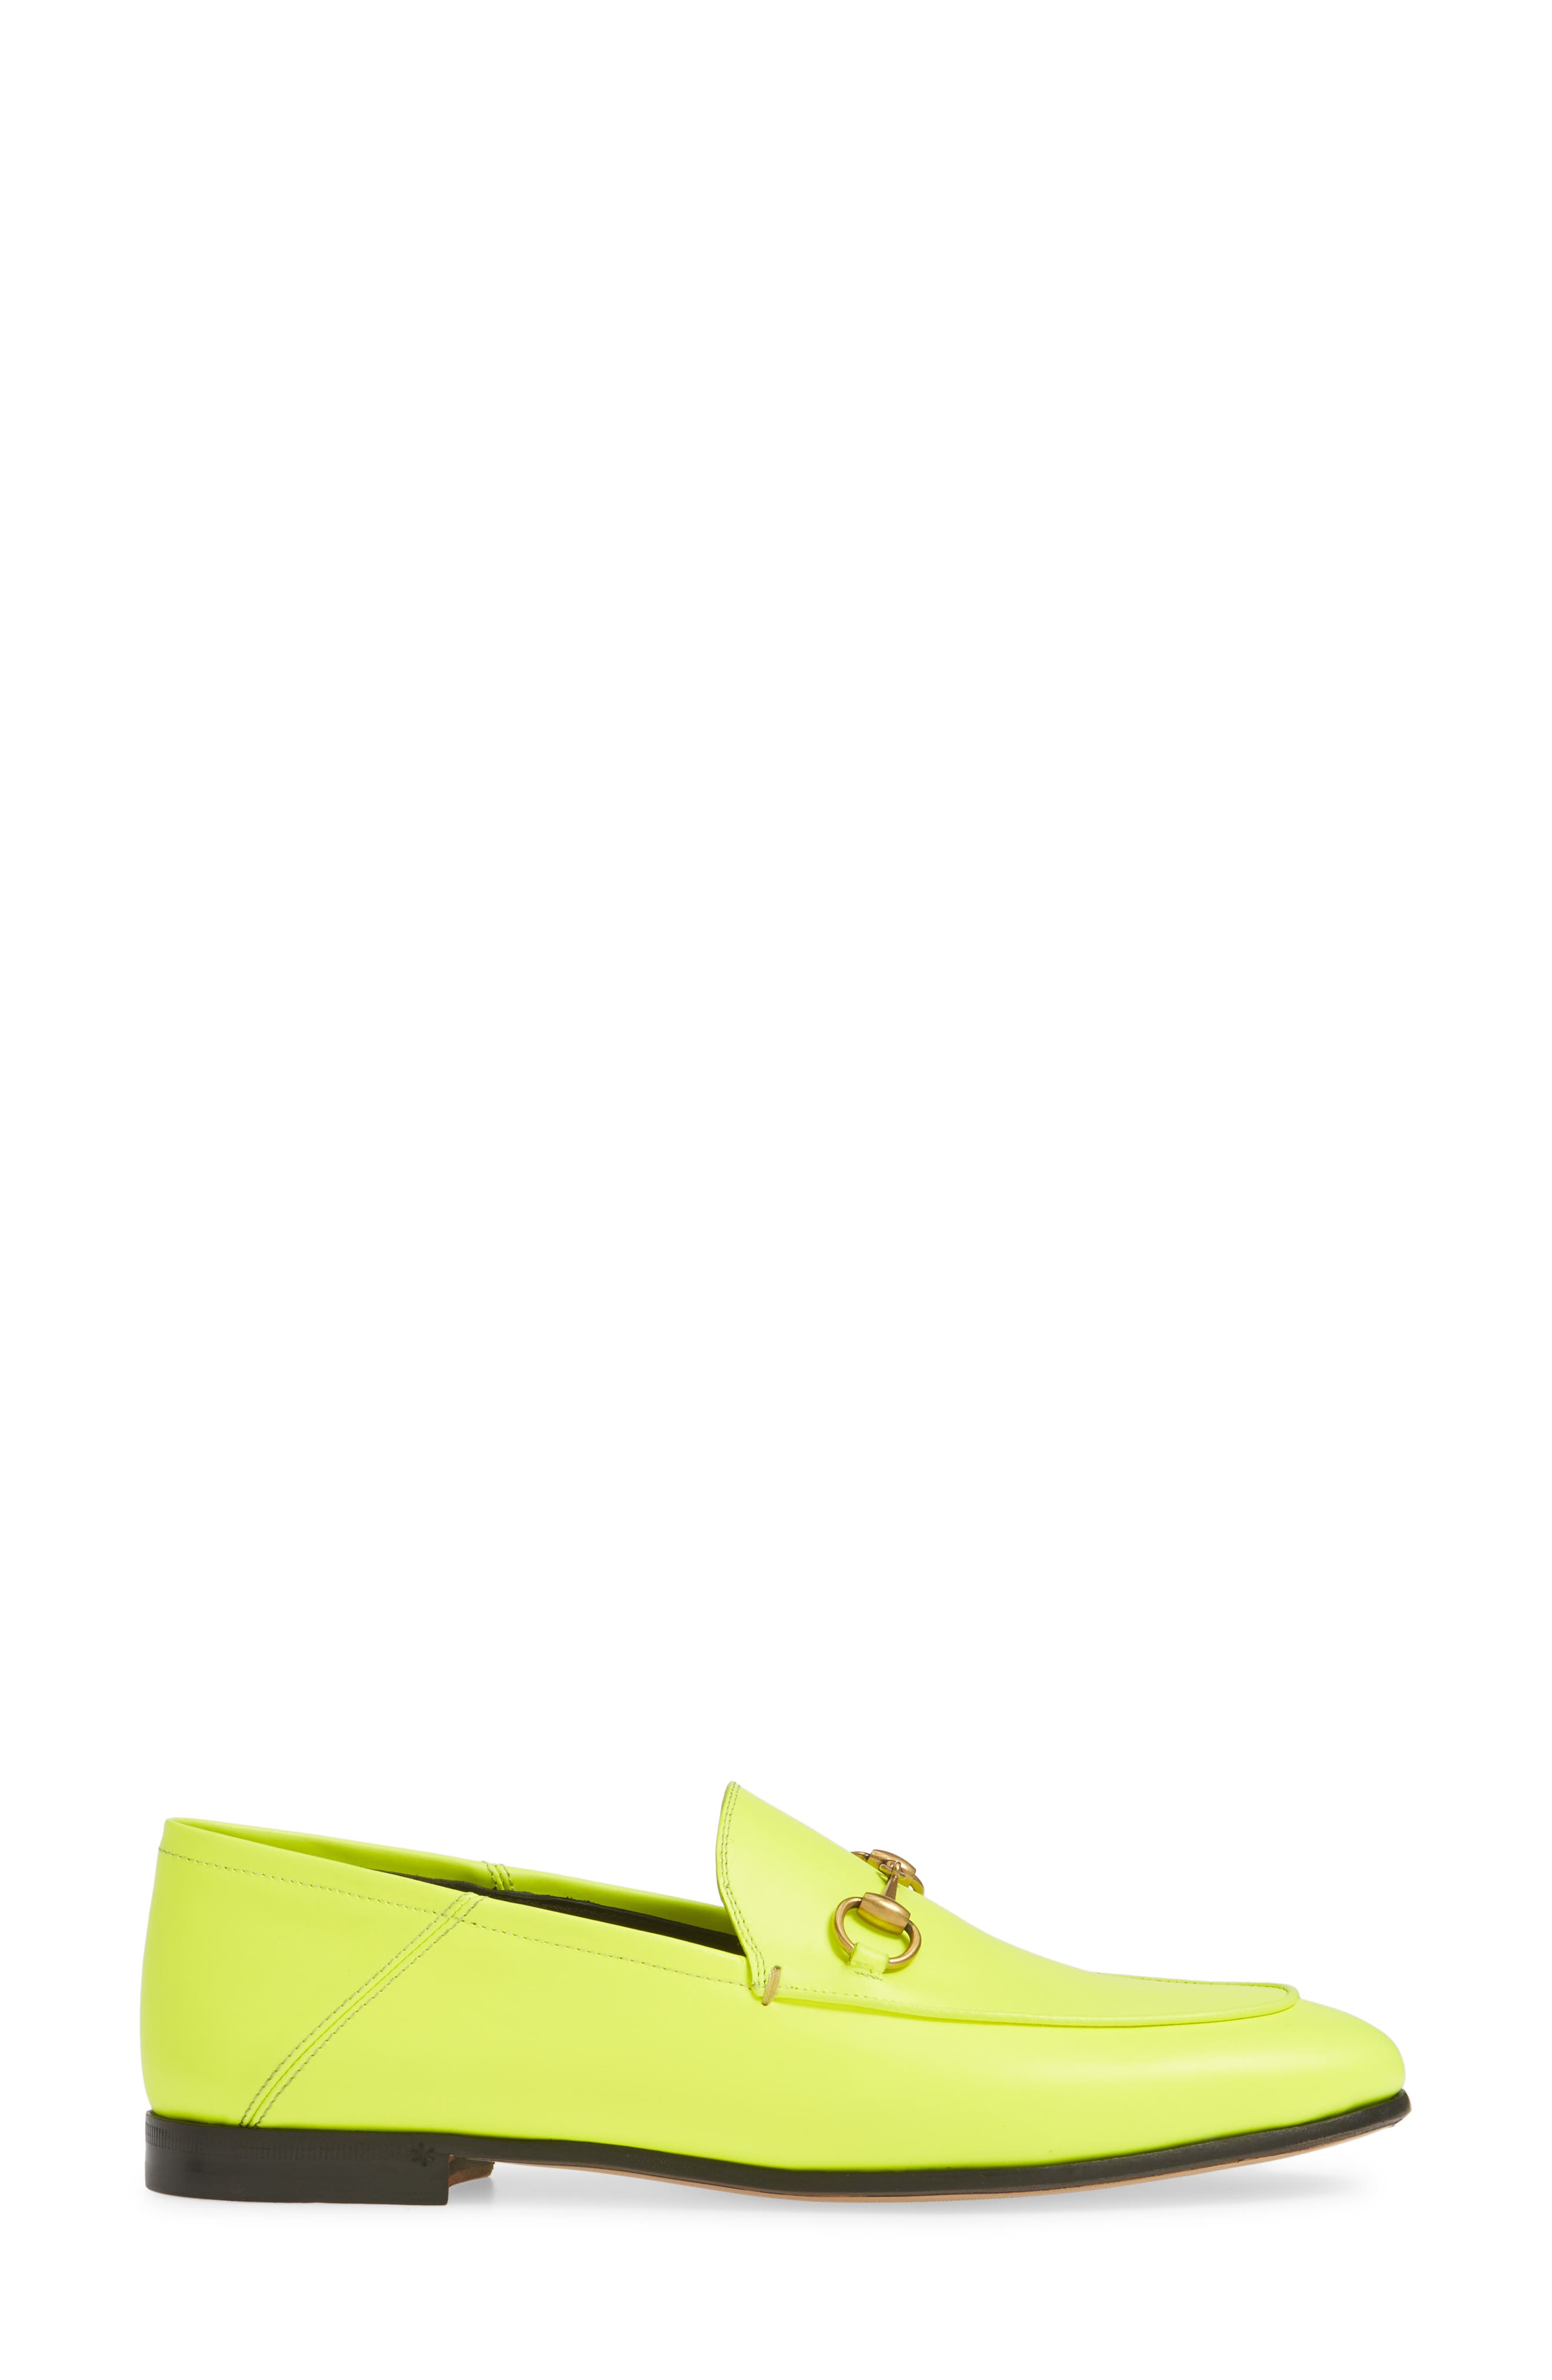 GUCCI, Brixton Convertible Loafer, Alternate thumbnail 3, color, YELLOW FLUO LEATHER